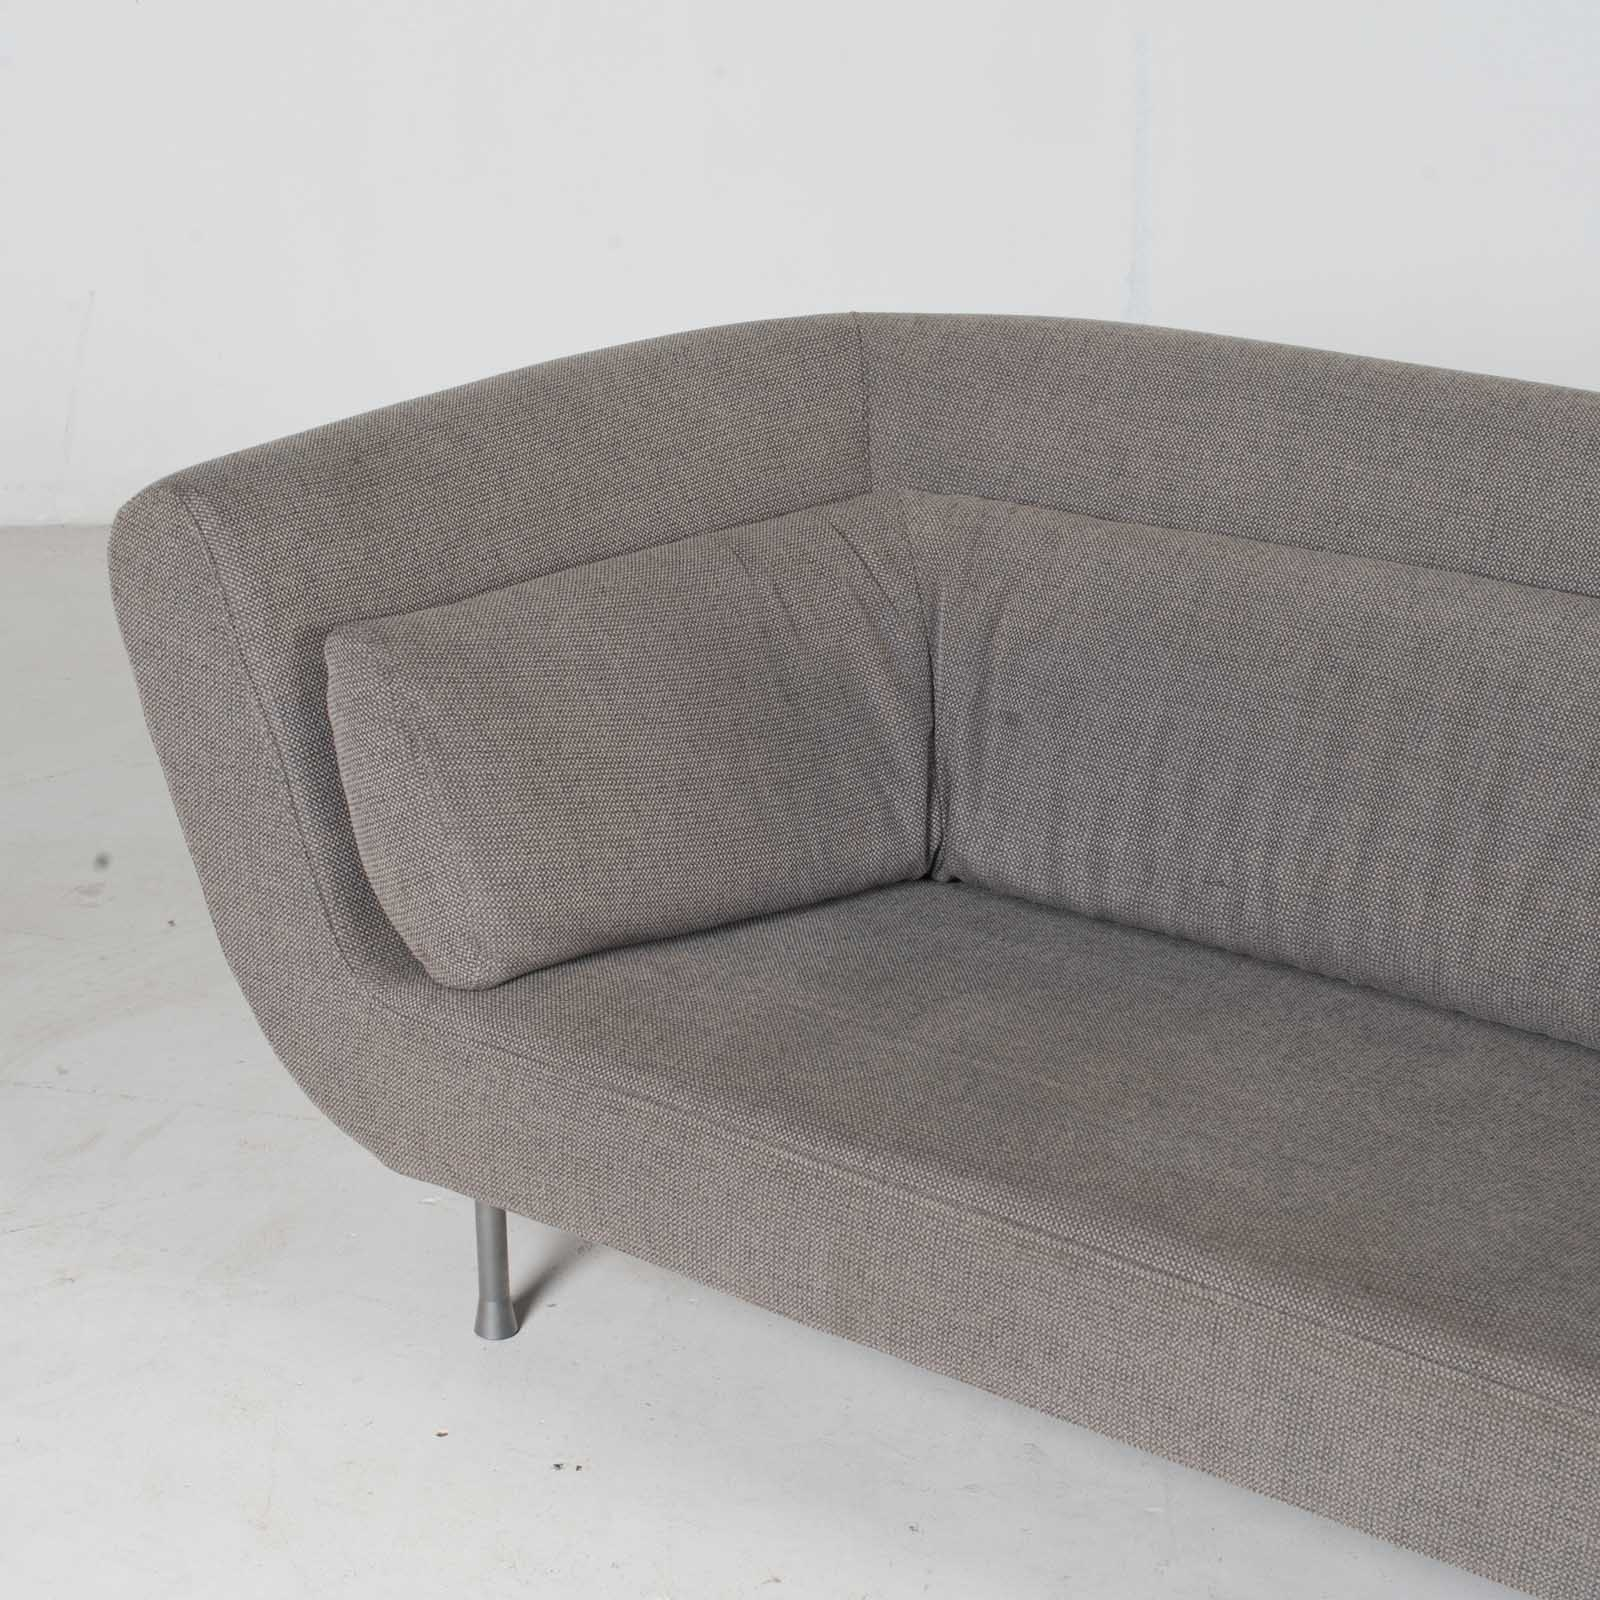 Sofa From The Yang Series By Francois Bauchet For Ligne Roset, 2002, France5